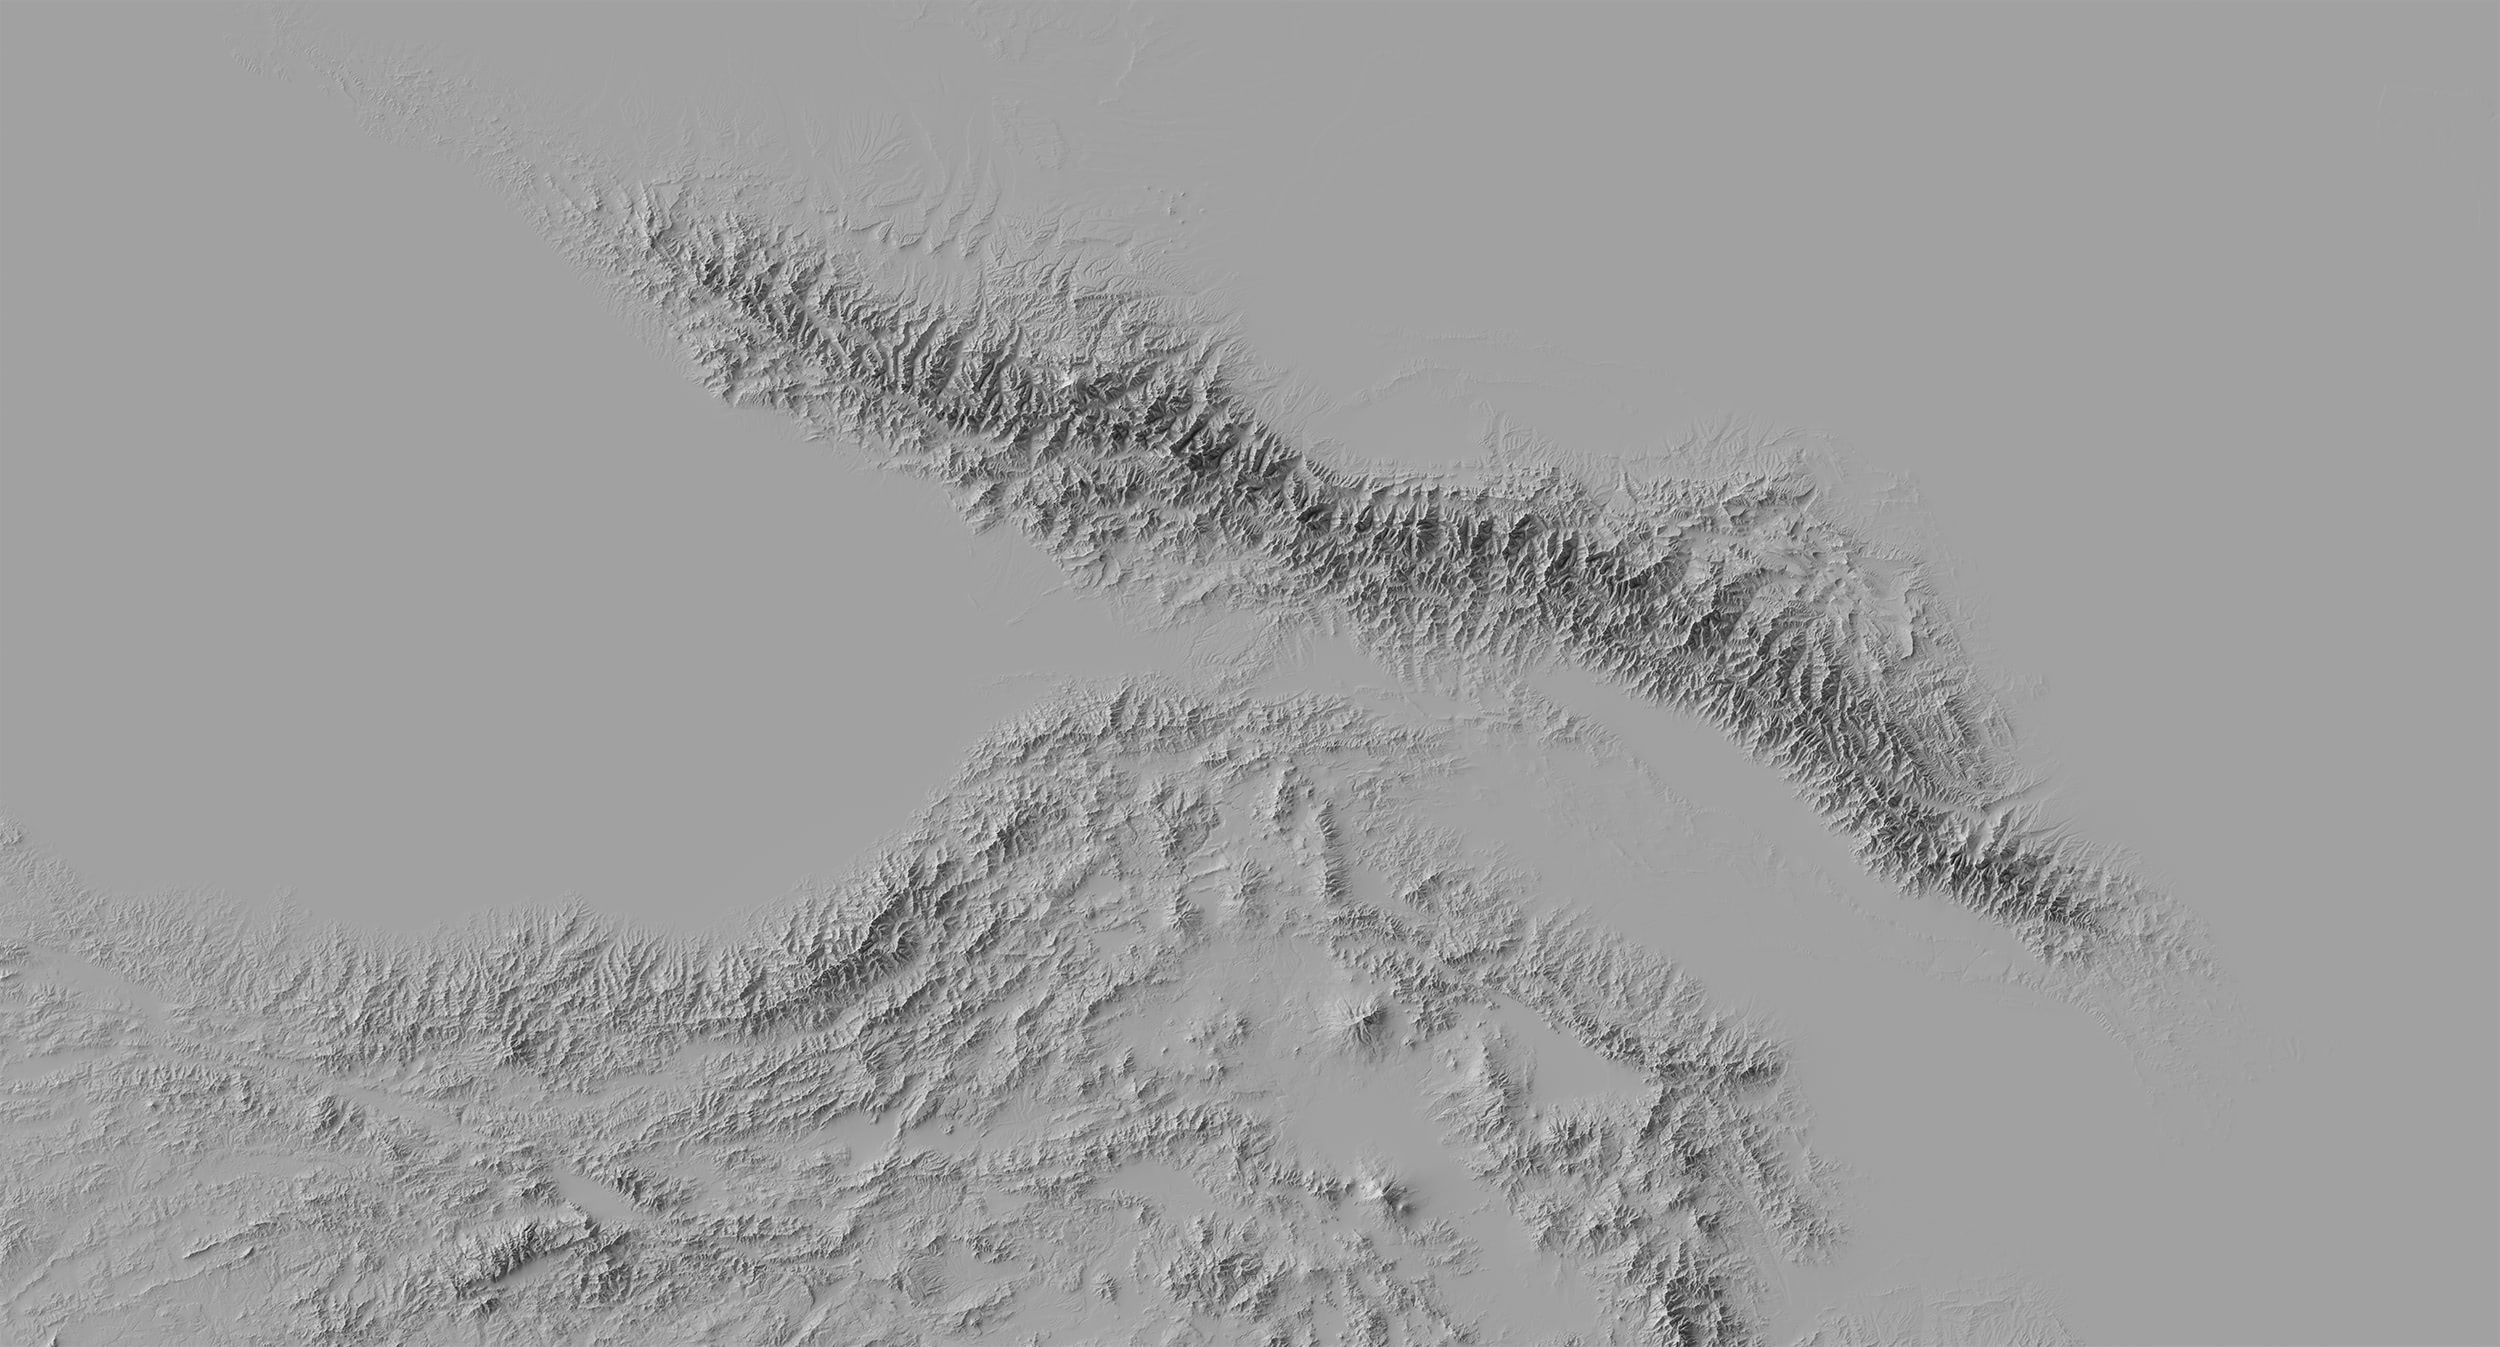 Blender's more realistic rendering of Caucasus topography shows a much clearer contrast between the higher Greater Caucasus and the lower Lesser Caucasus.